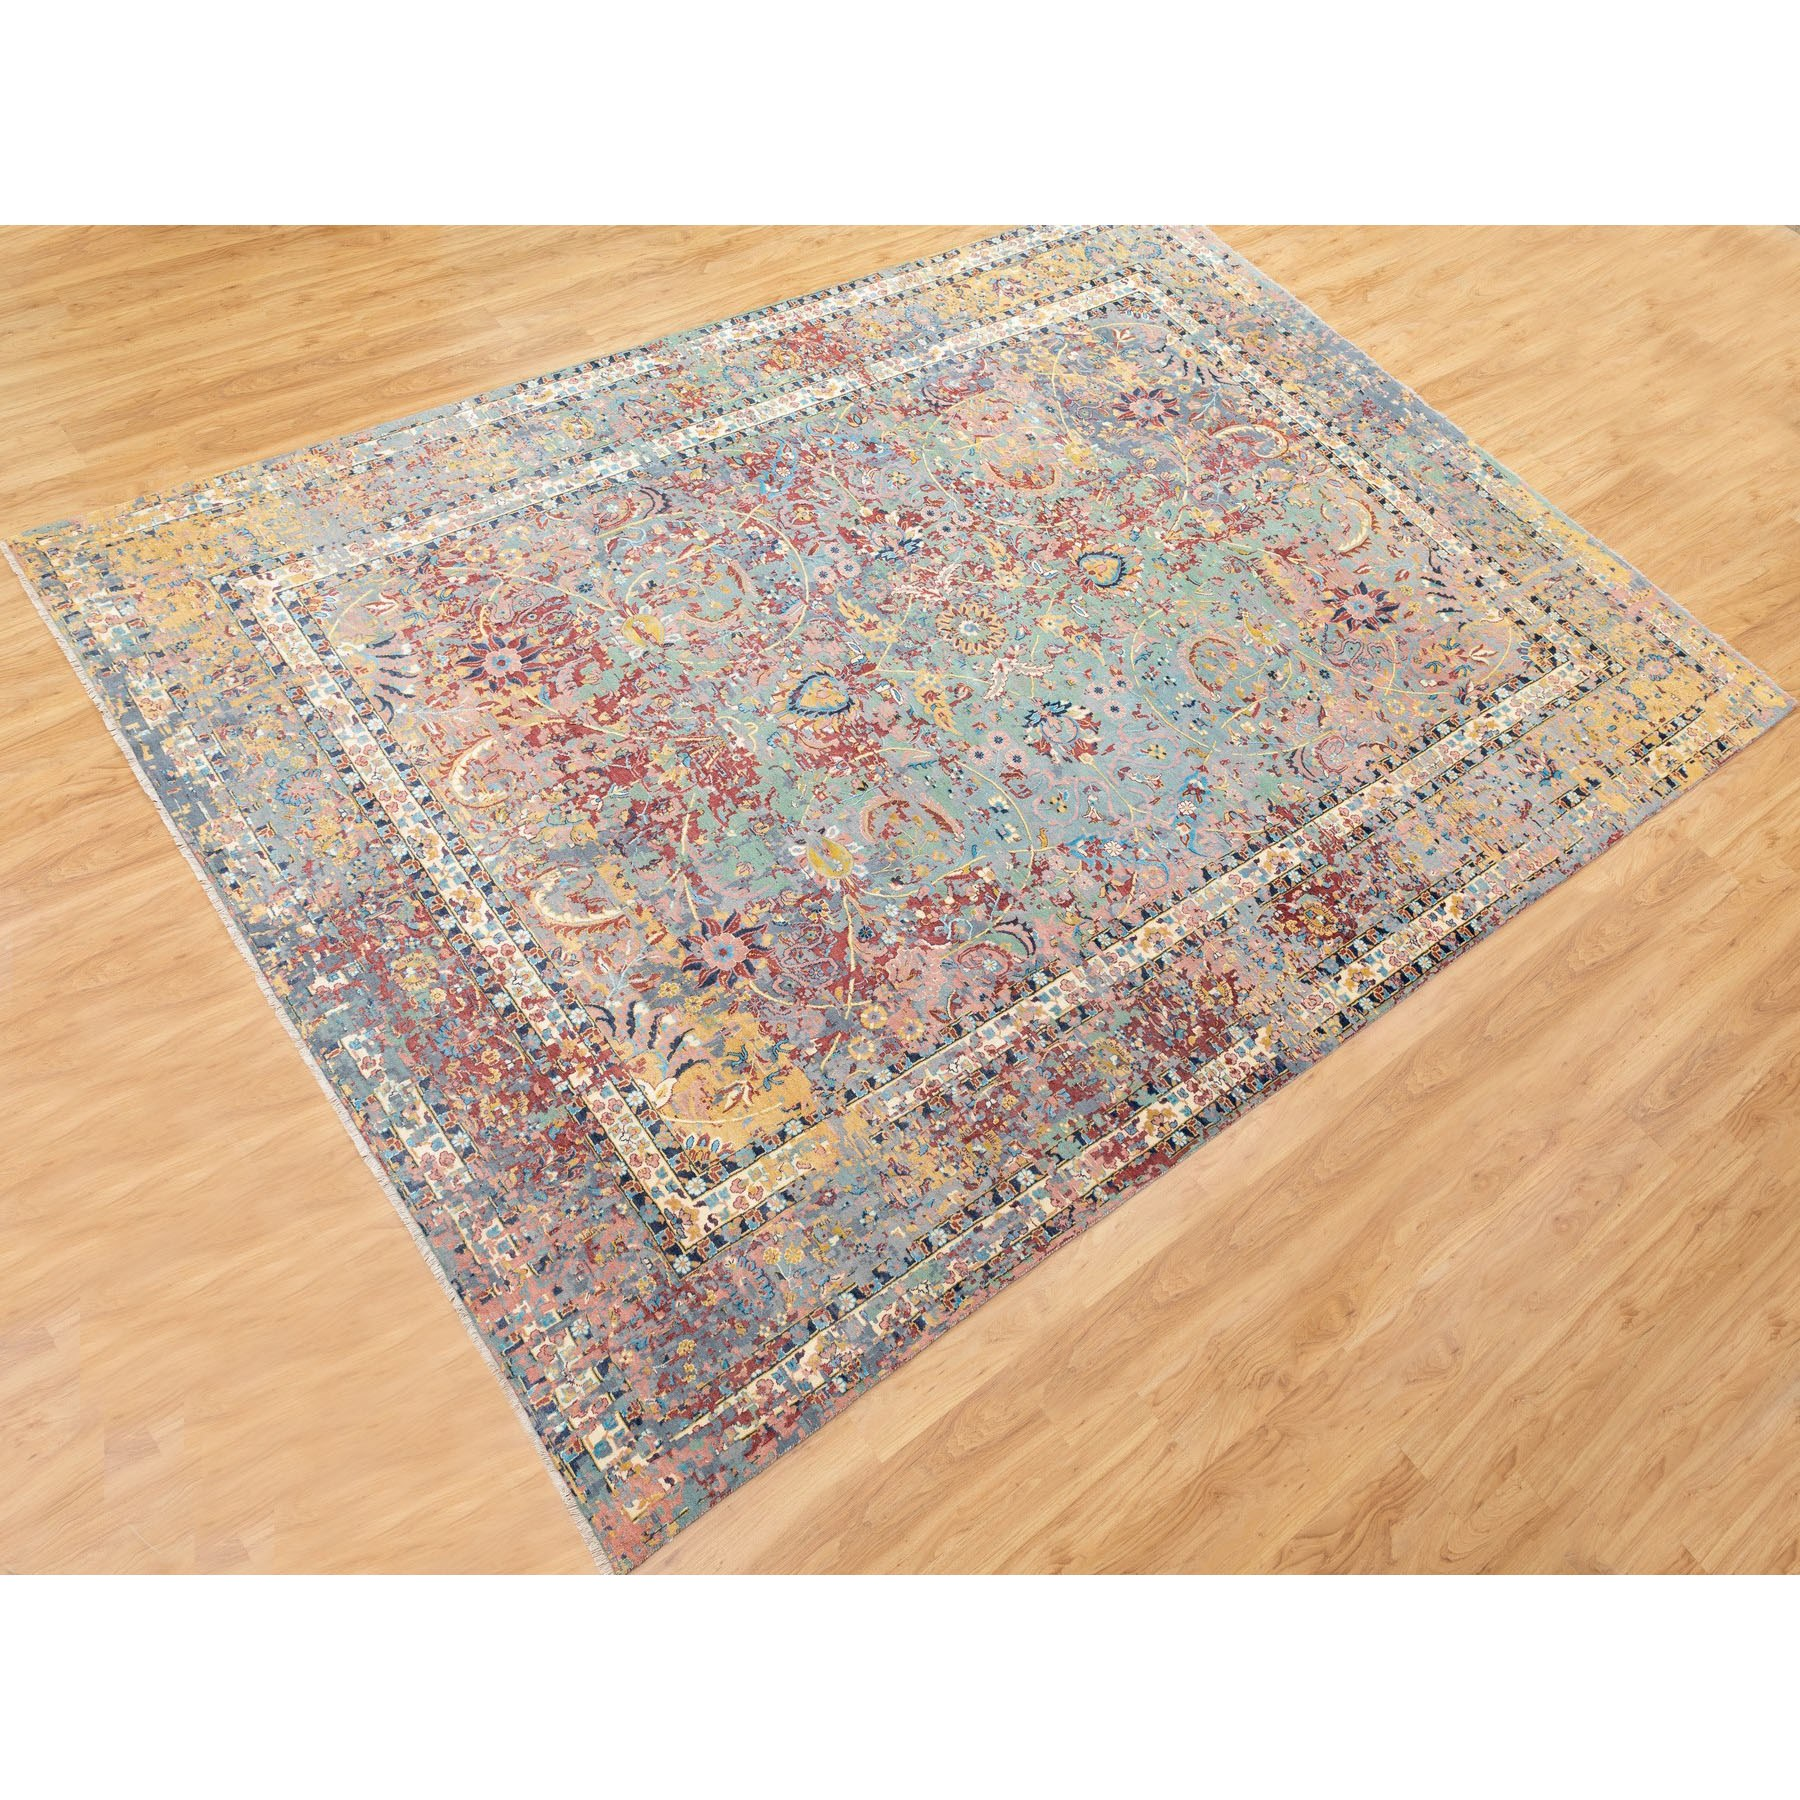 """10'x13'9"""" Multicolor Pure Silk With Textured Wool Erased Persian Design Hand Knotted Oriental Rug"""